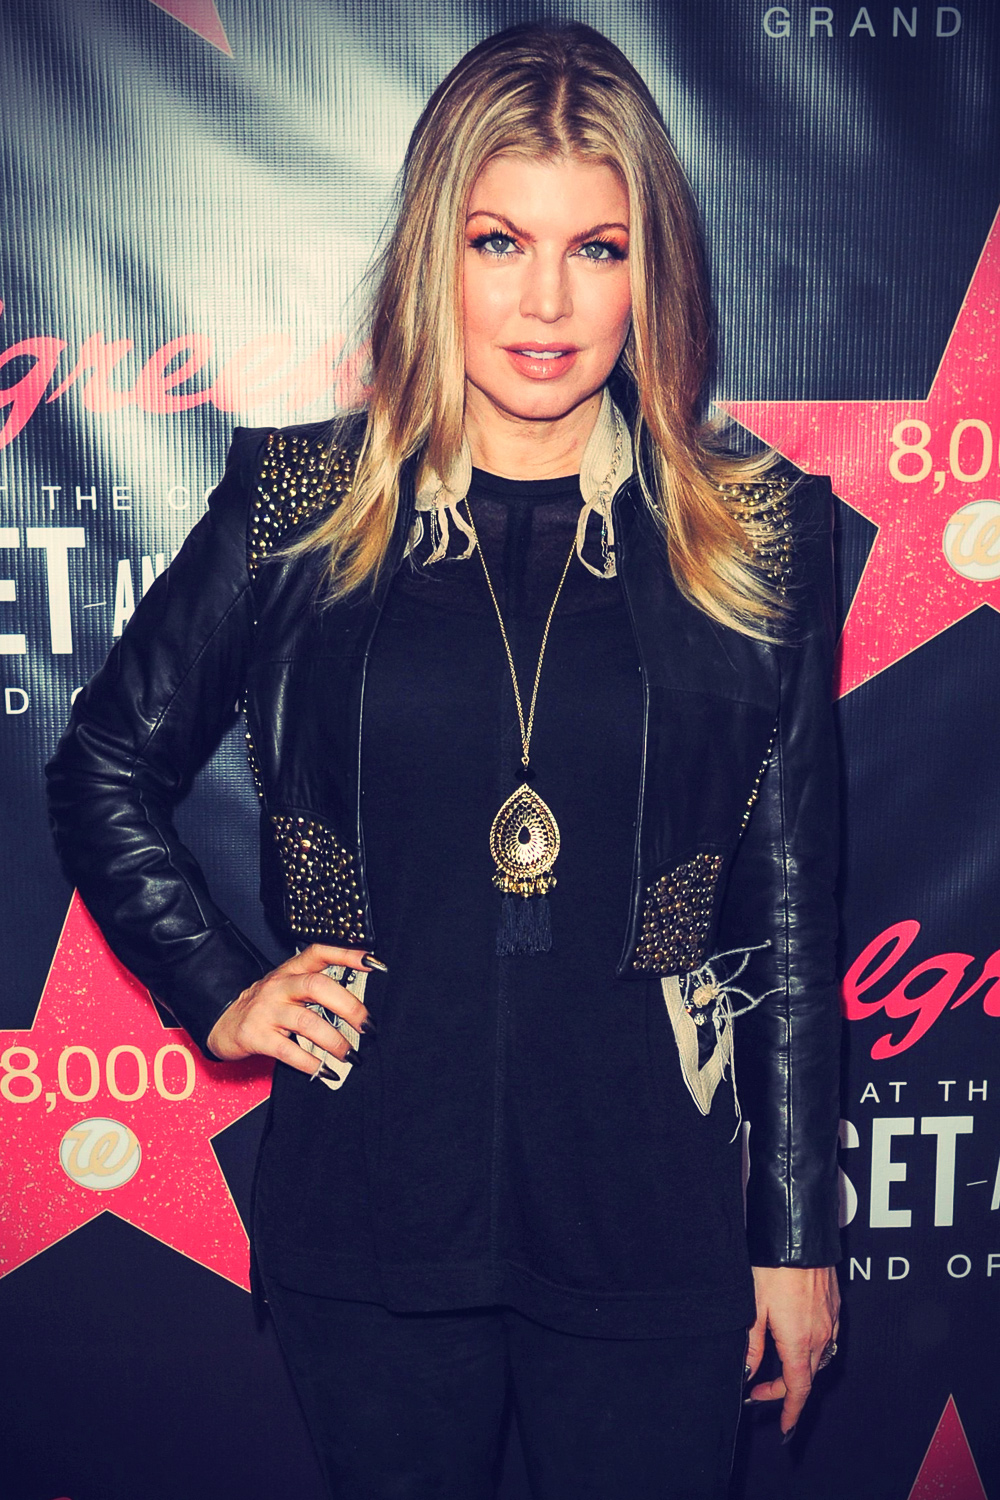 Stacey Ferguson attends Opening of Walgreens Flagship Store